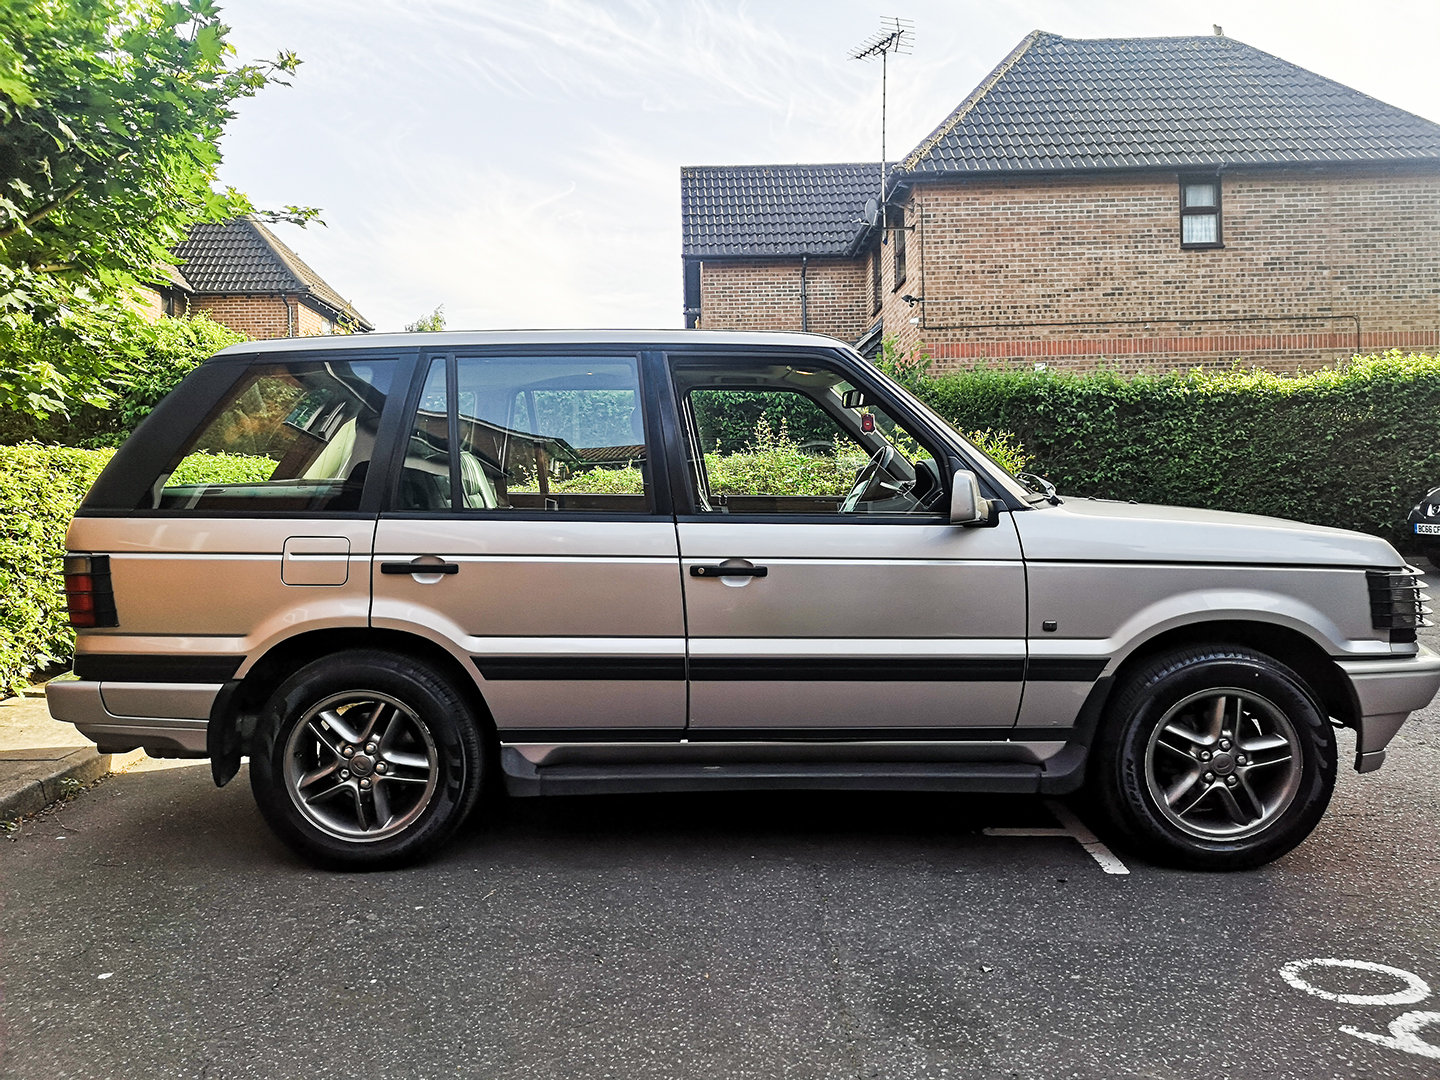 2002 Range Rover P38 Westminster Limited Edition For Sale (picture 3 of 6)